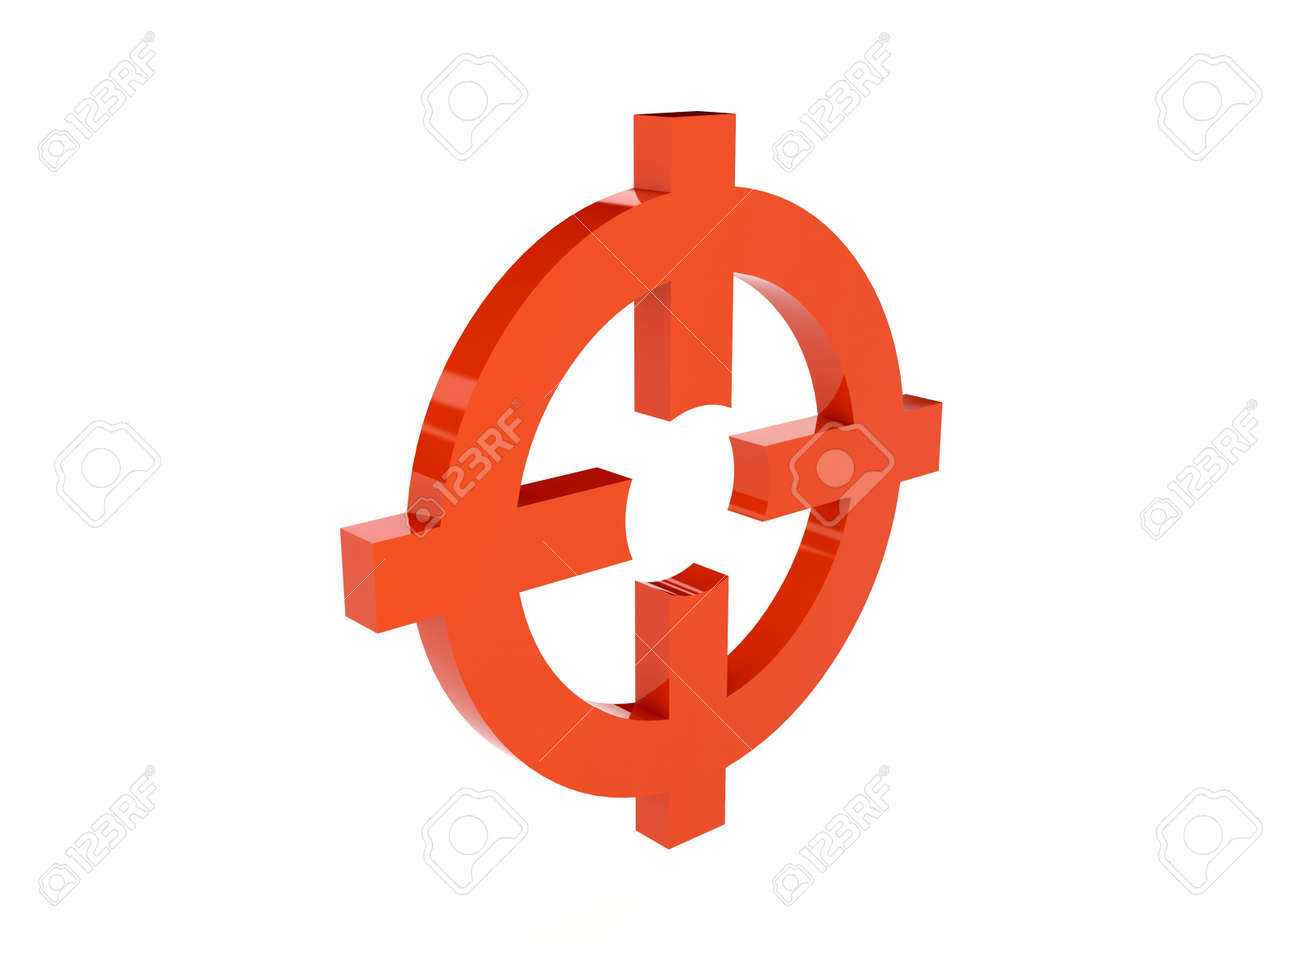 Target icon over white background. Concept 3D illustration. Stock Photo - 20833286